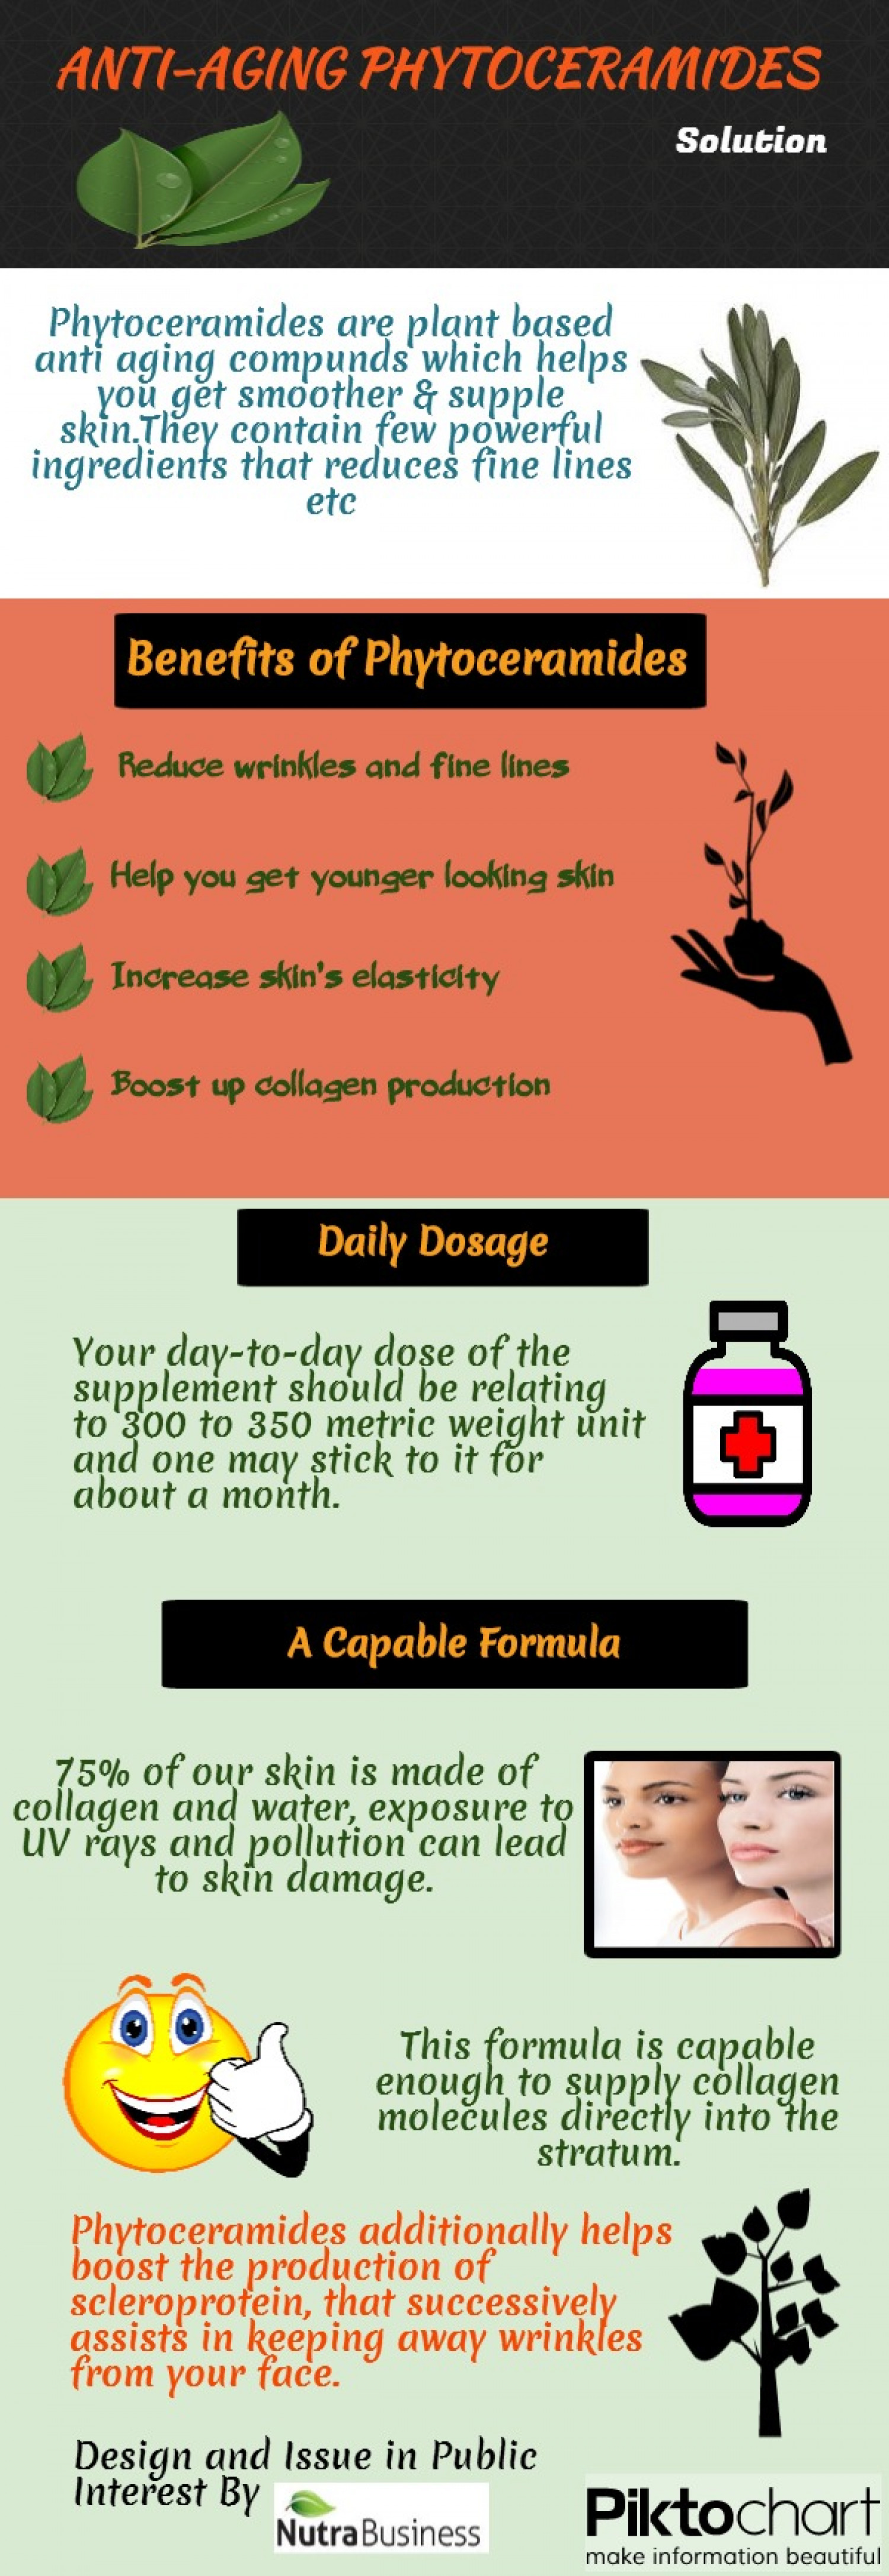 ANTI-AGING PHYTOCERAMIDE SOLUTION Infographic